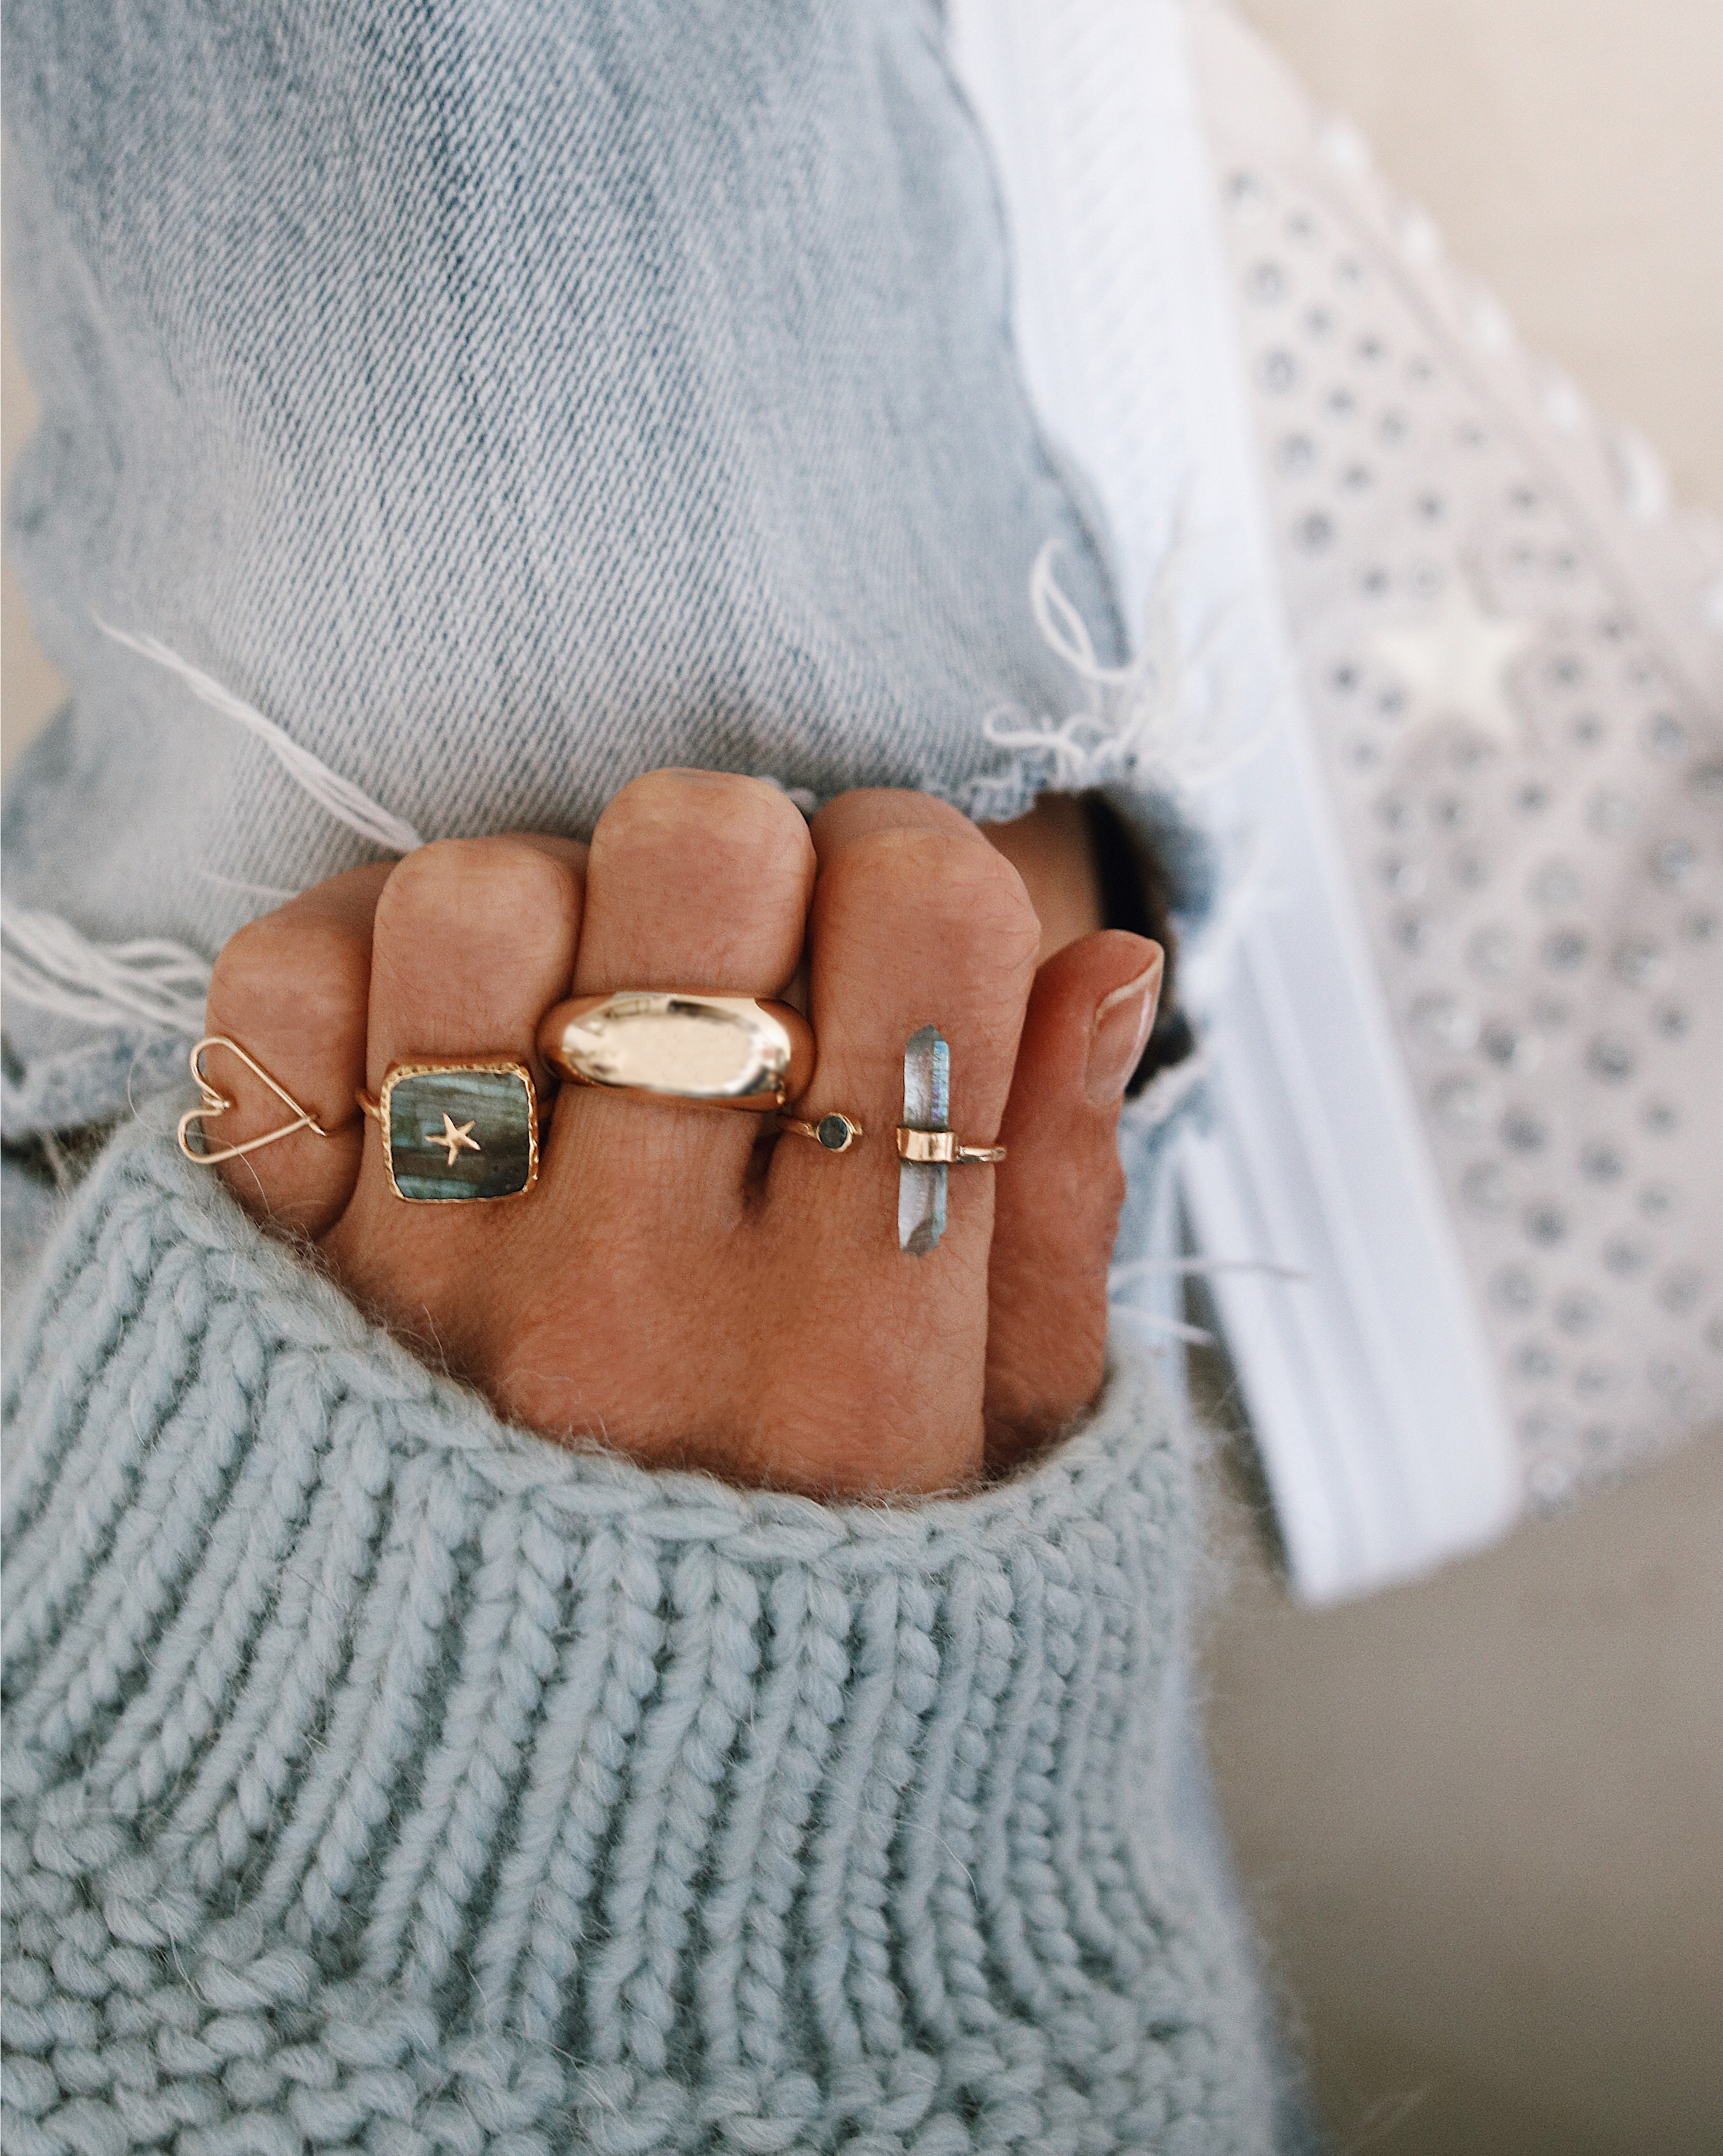 RING RING RING - Chon & CHON - #jewelryaddict - GOLD RINGS, bagues de créateurs or, pierre semi précieuses, bijoux femme, bagues or, gold rings